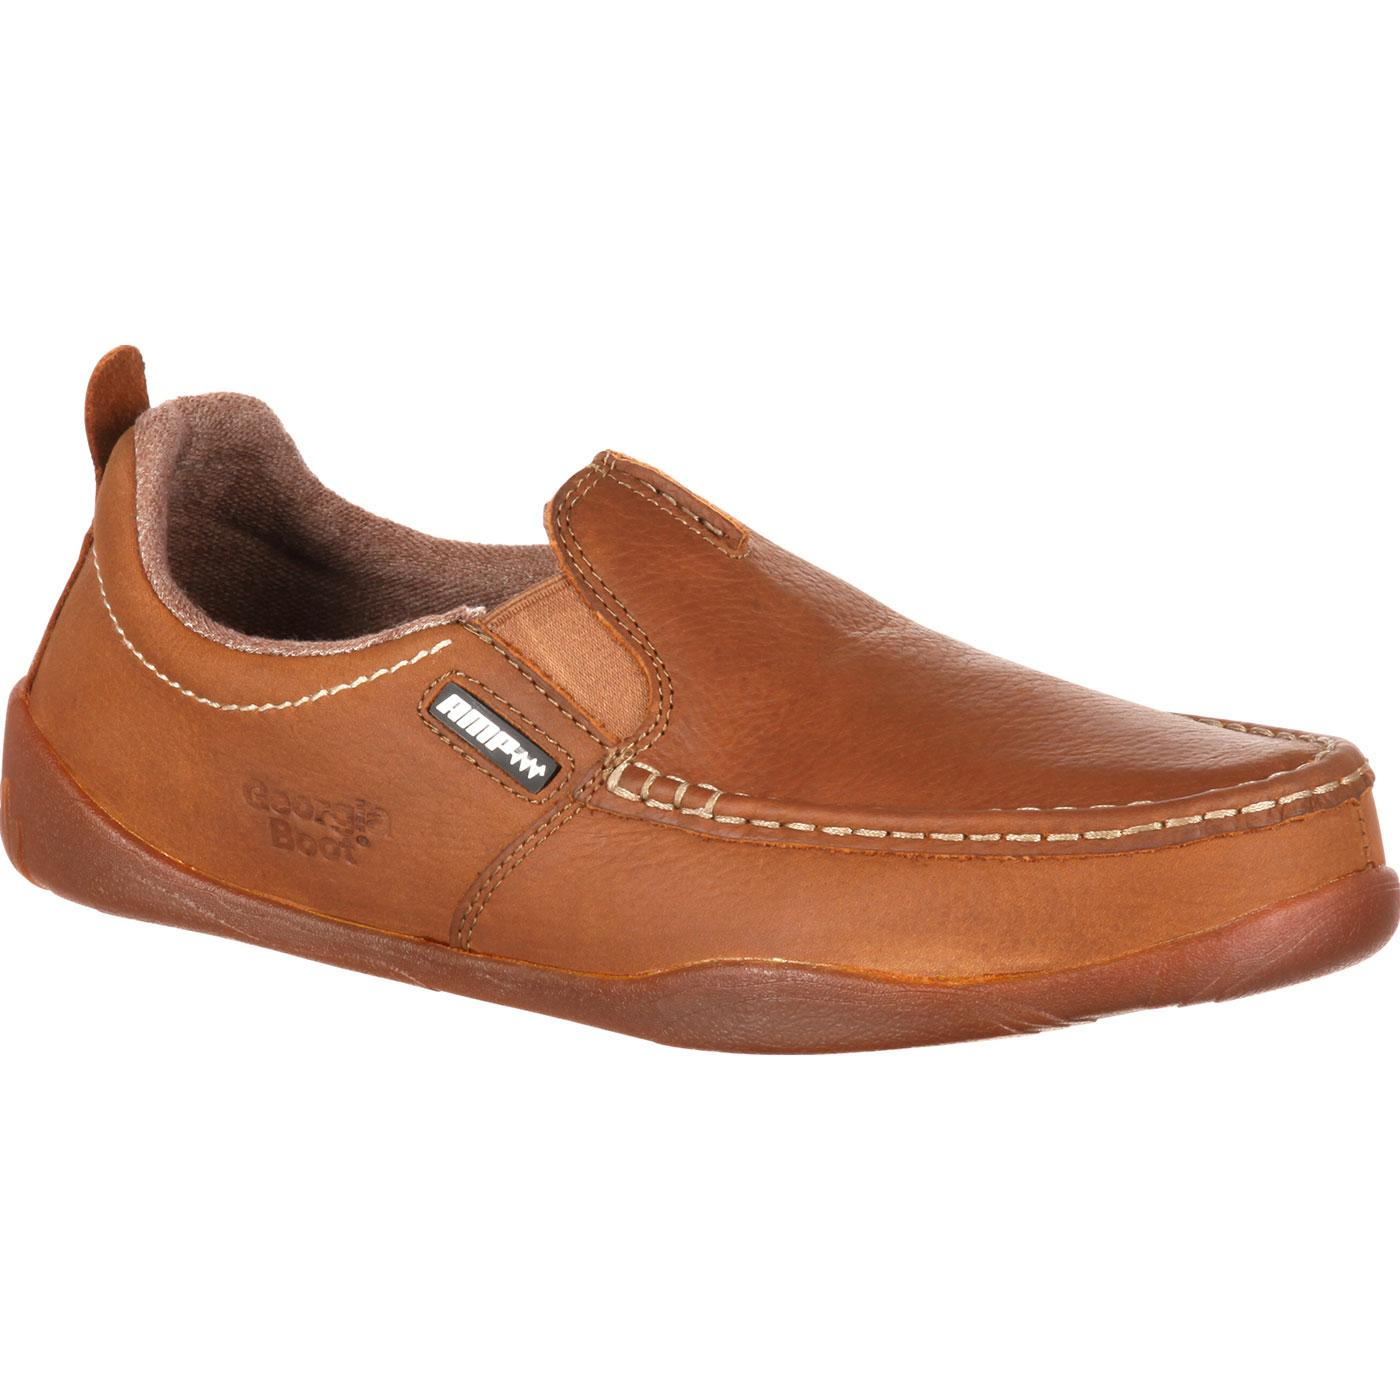 These shoes (for me) last a very long time. I normally wear them for work, but they have almost become my everyday shoes. The slip resistance is excellent, the footbeds are very well constructed and easy to clean and shine up.